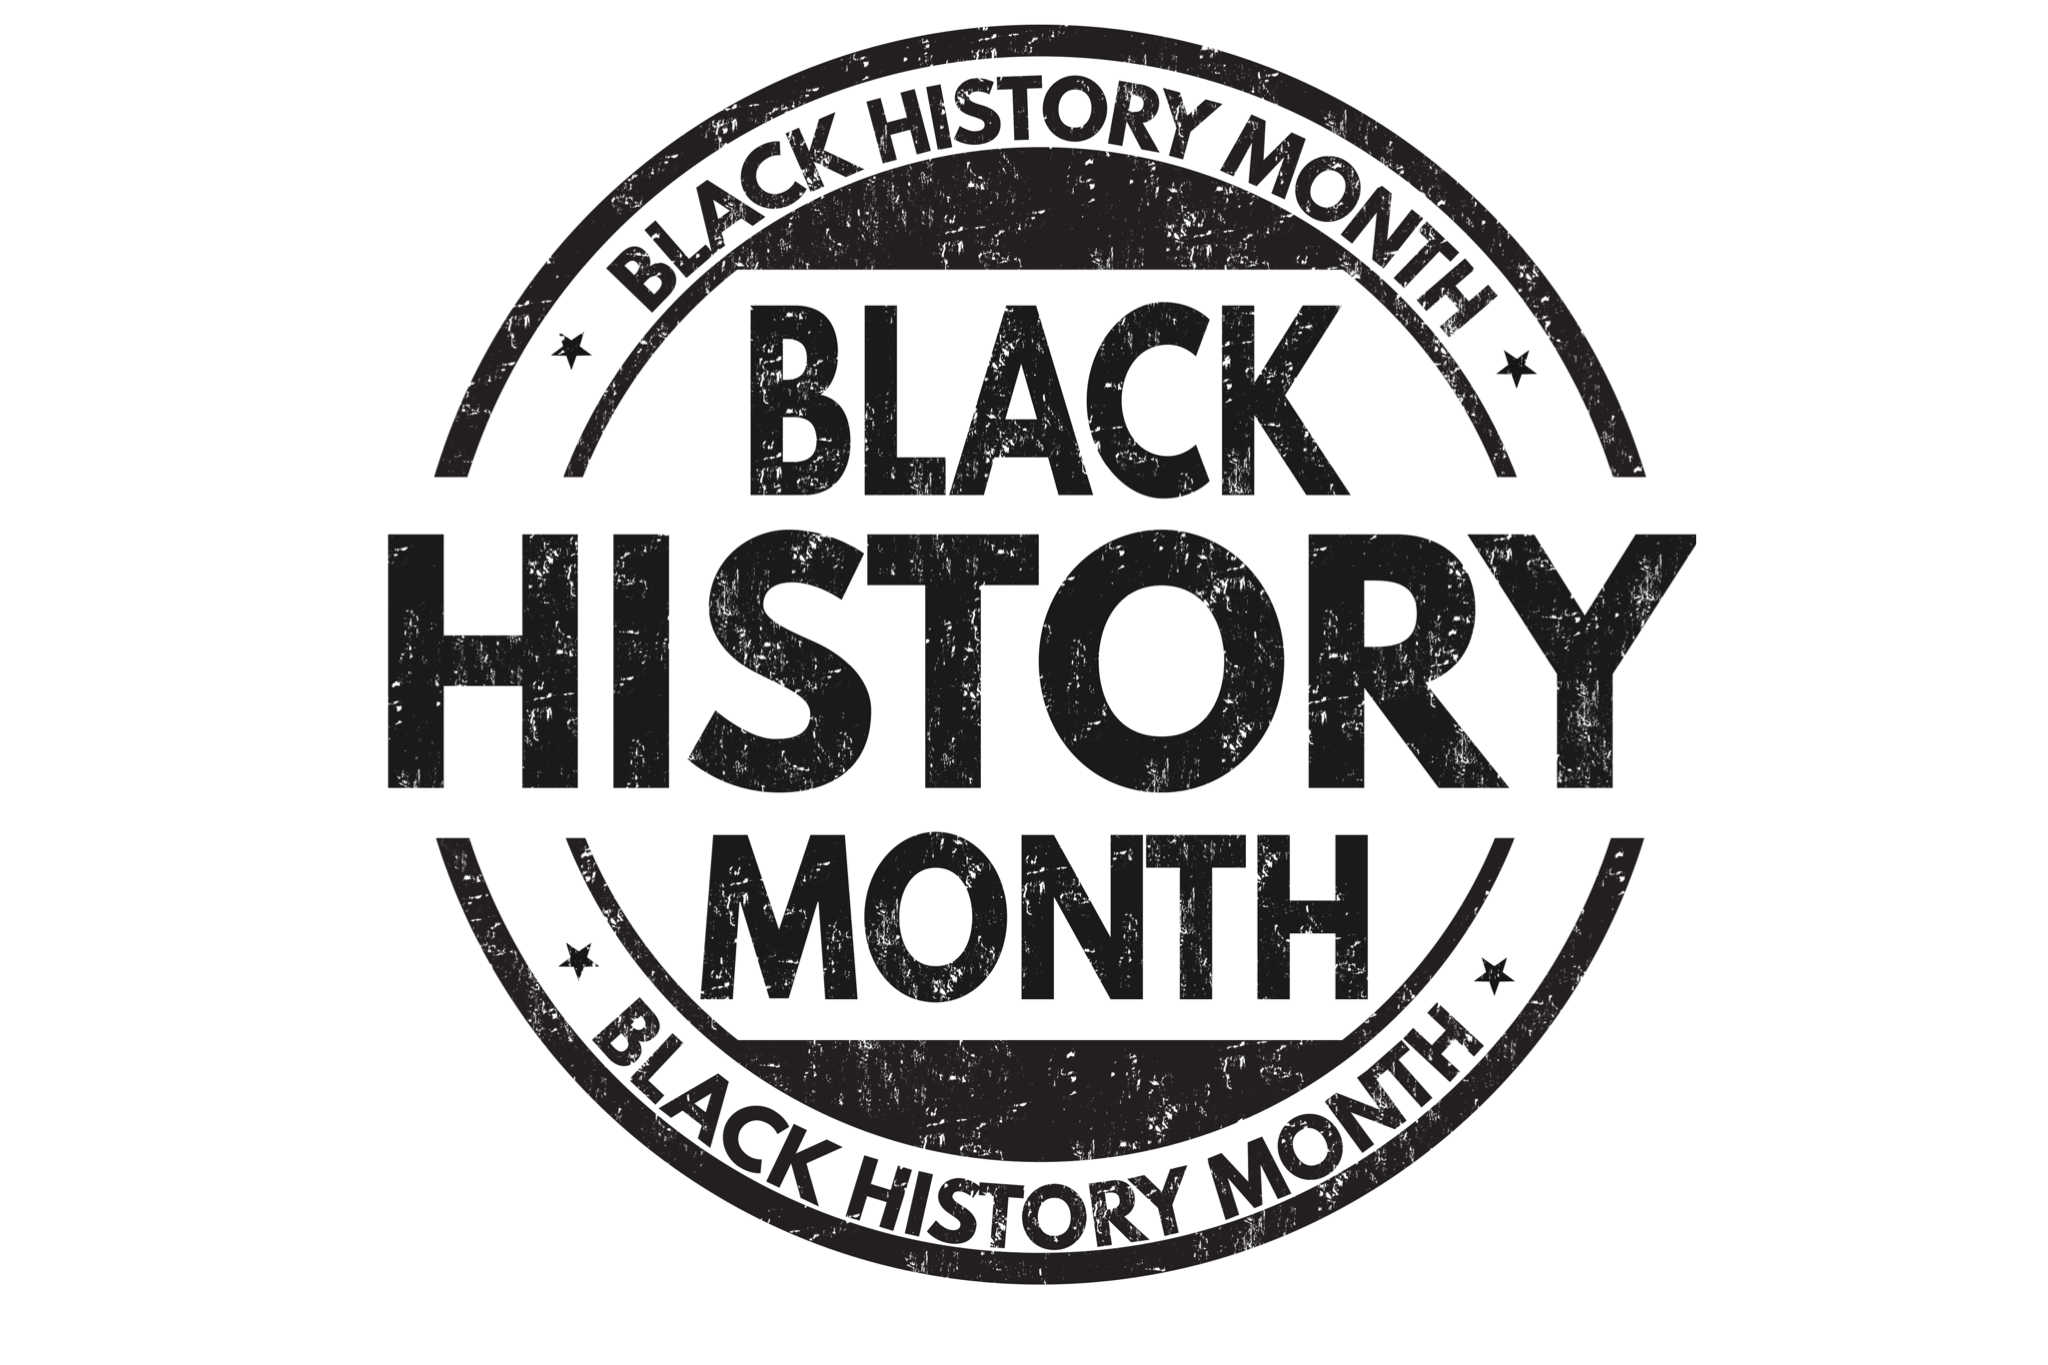 Inspirational Quotes To Commemorate Black History Month